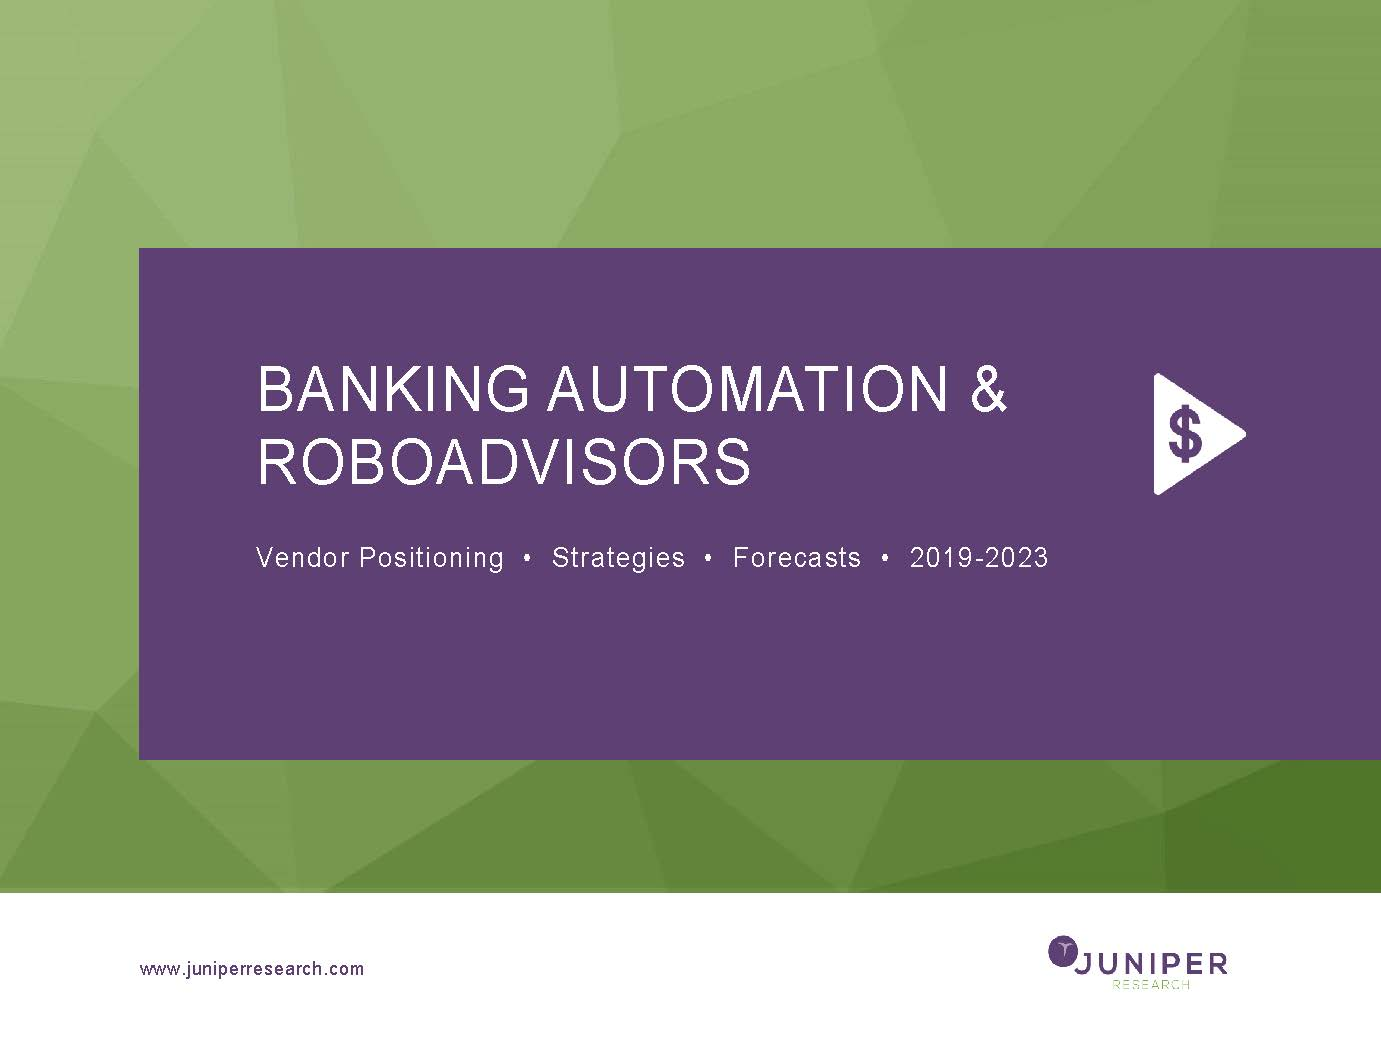 Banking Automation & Roboadvisors: Vendor Positioning, Strategies & Forecasts 2019-2023